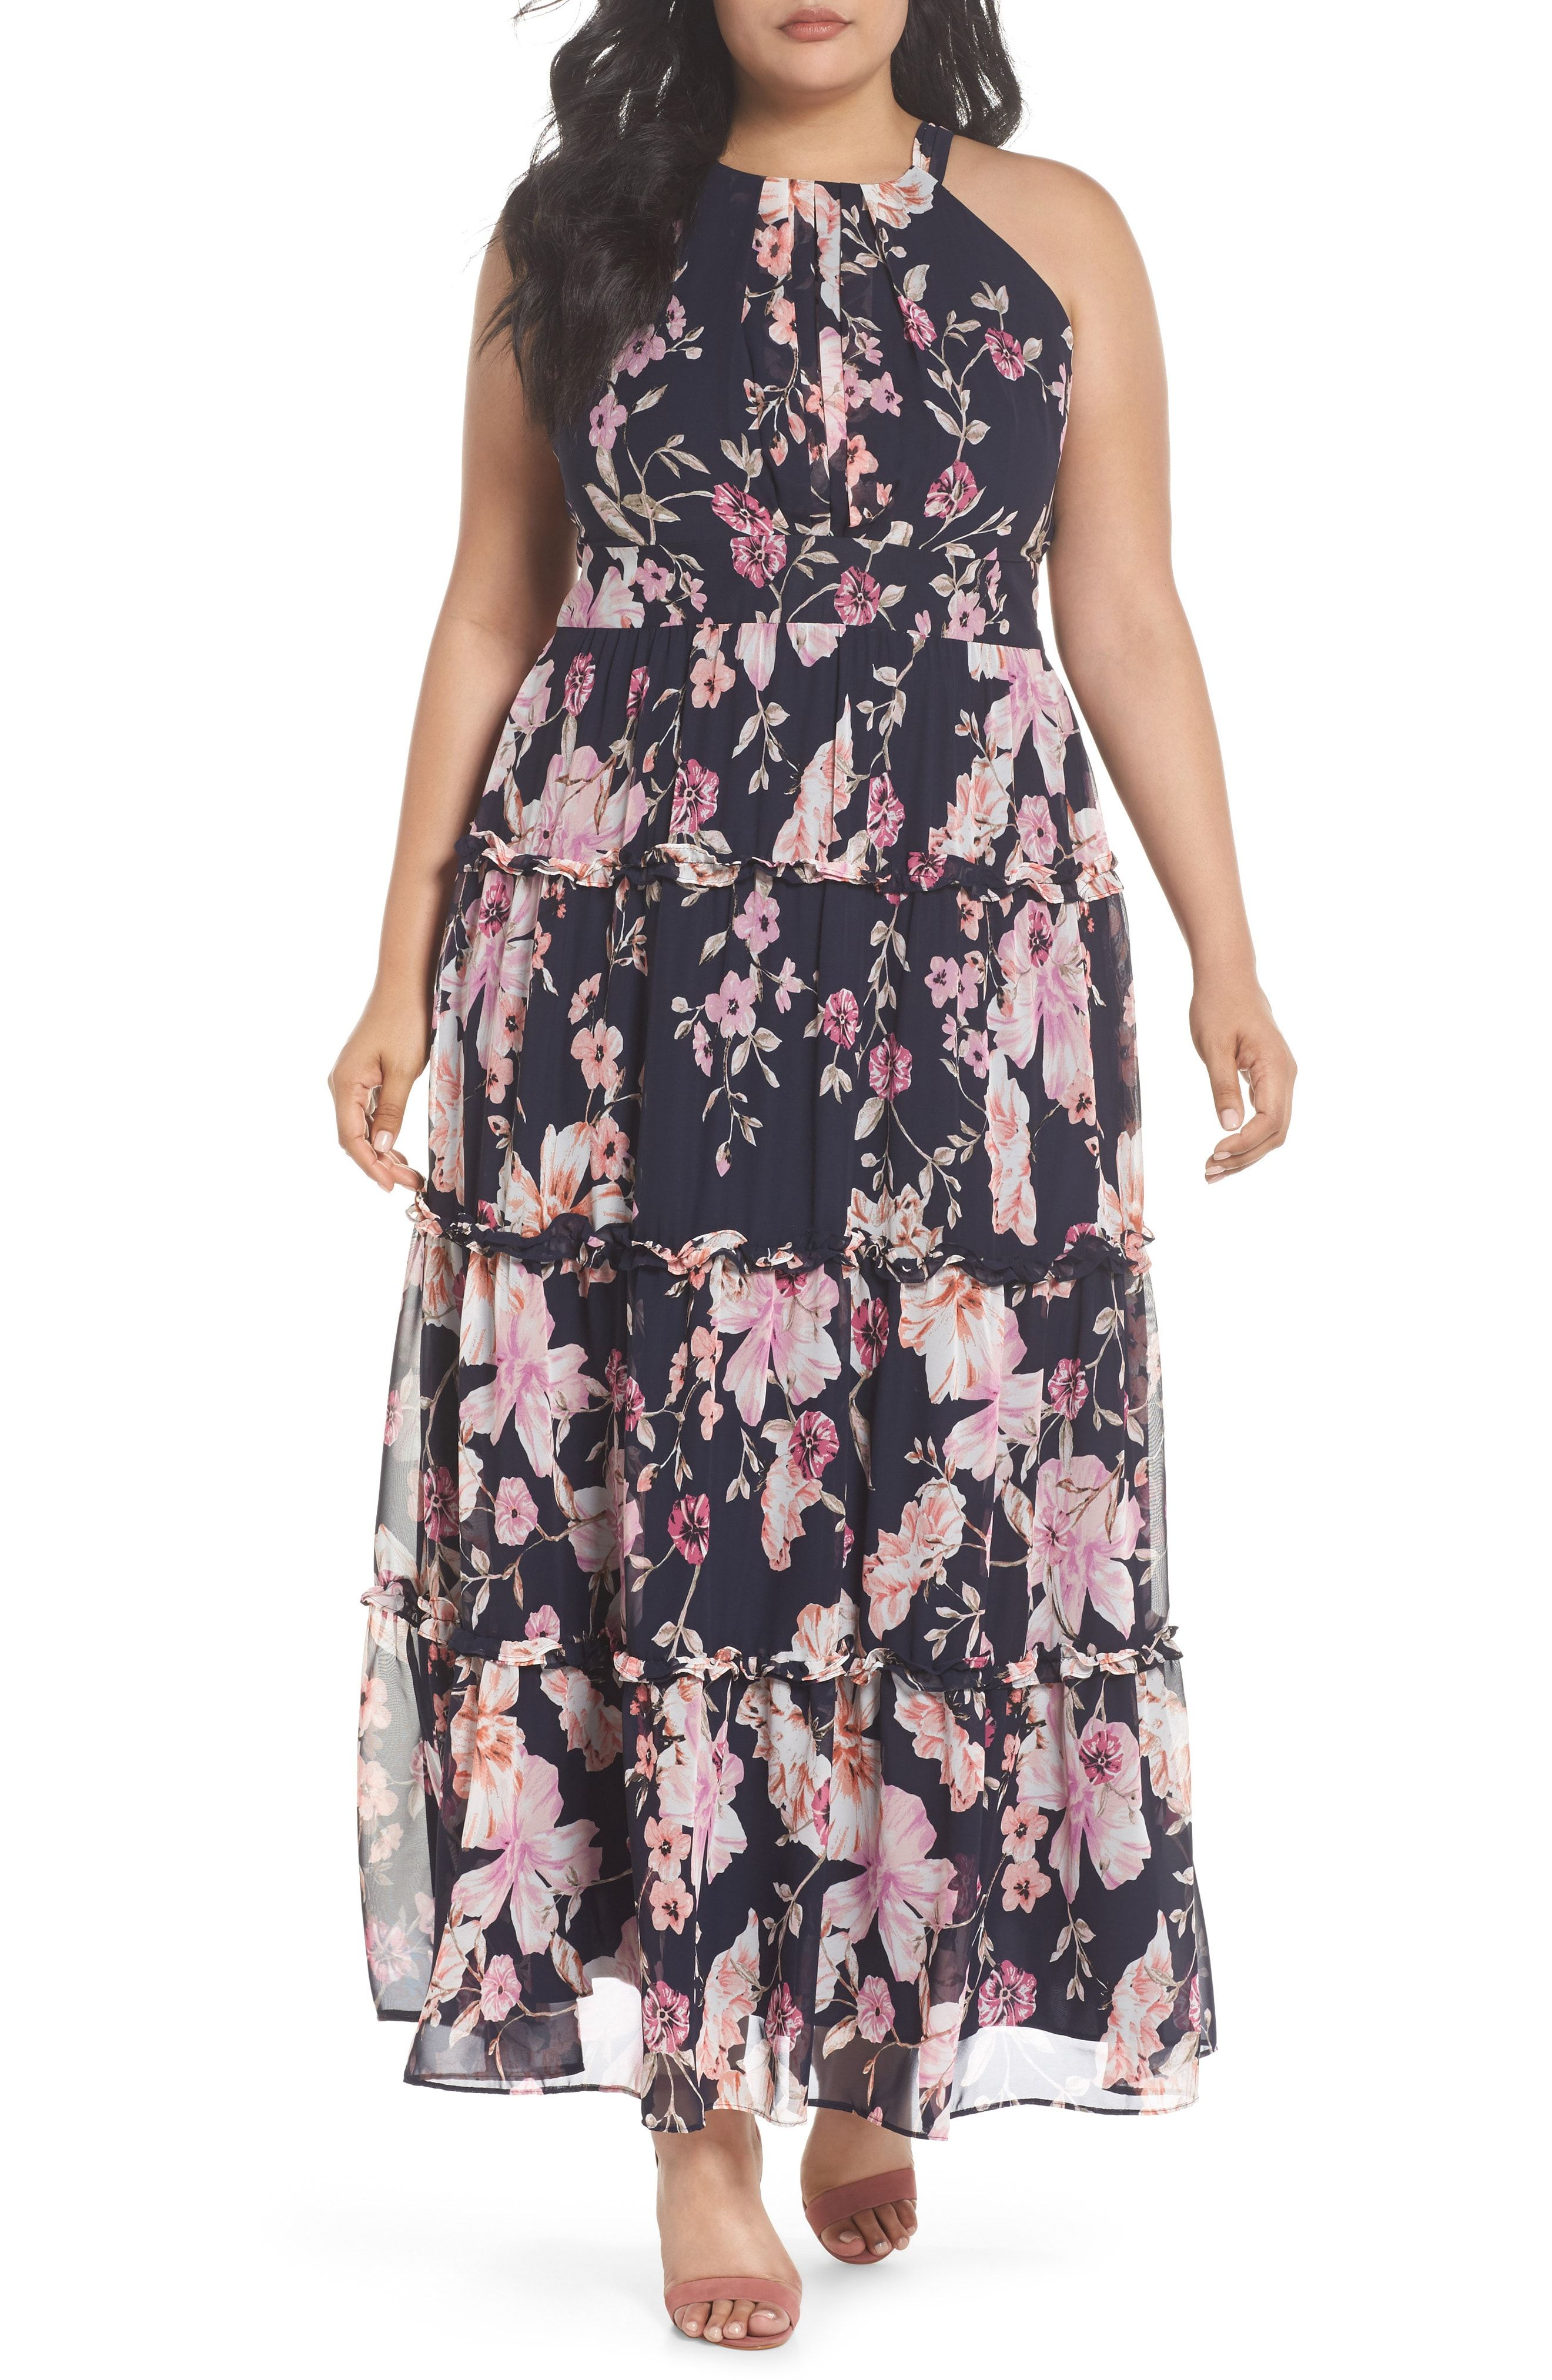 c5cd6dc4589 New Eliza J Floral Ruffle Trim Chiffon Halter Maxi Dress (Plus Size)  online.   178  findofferdresses offers on top store